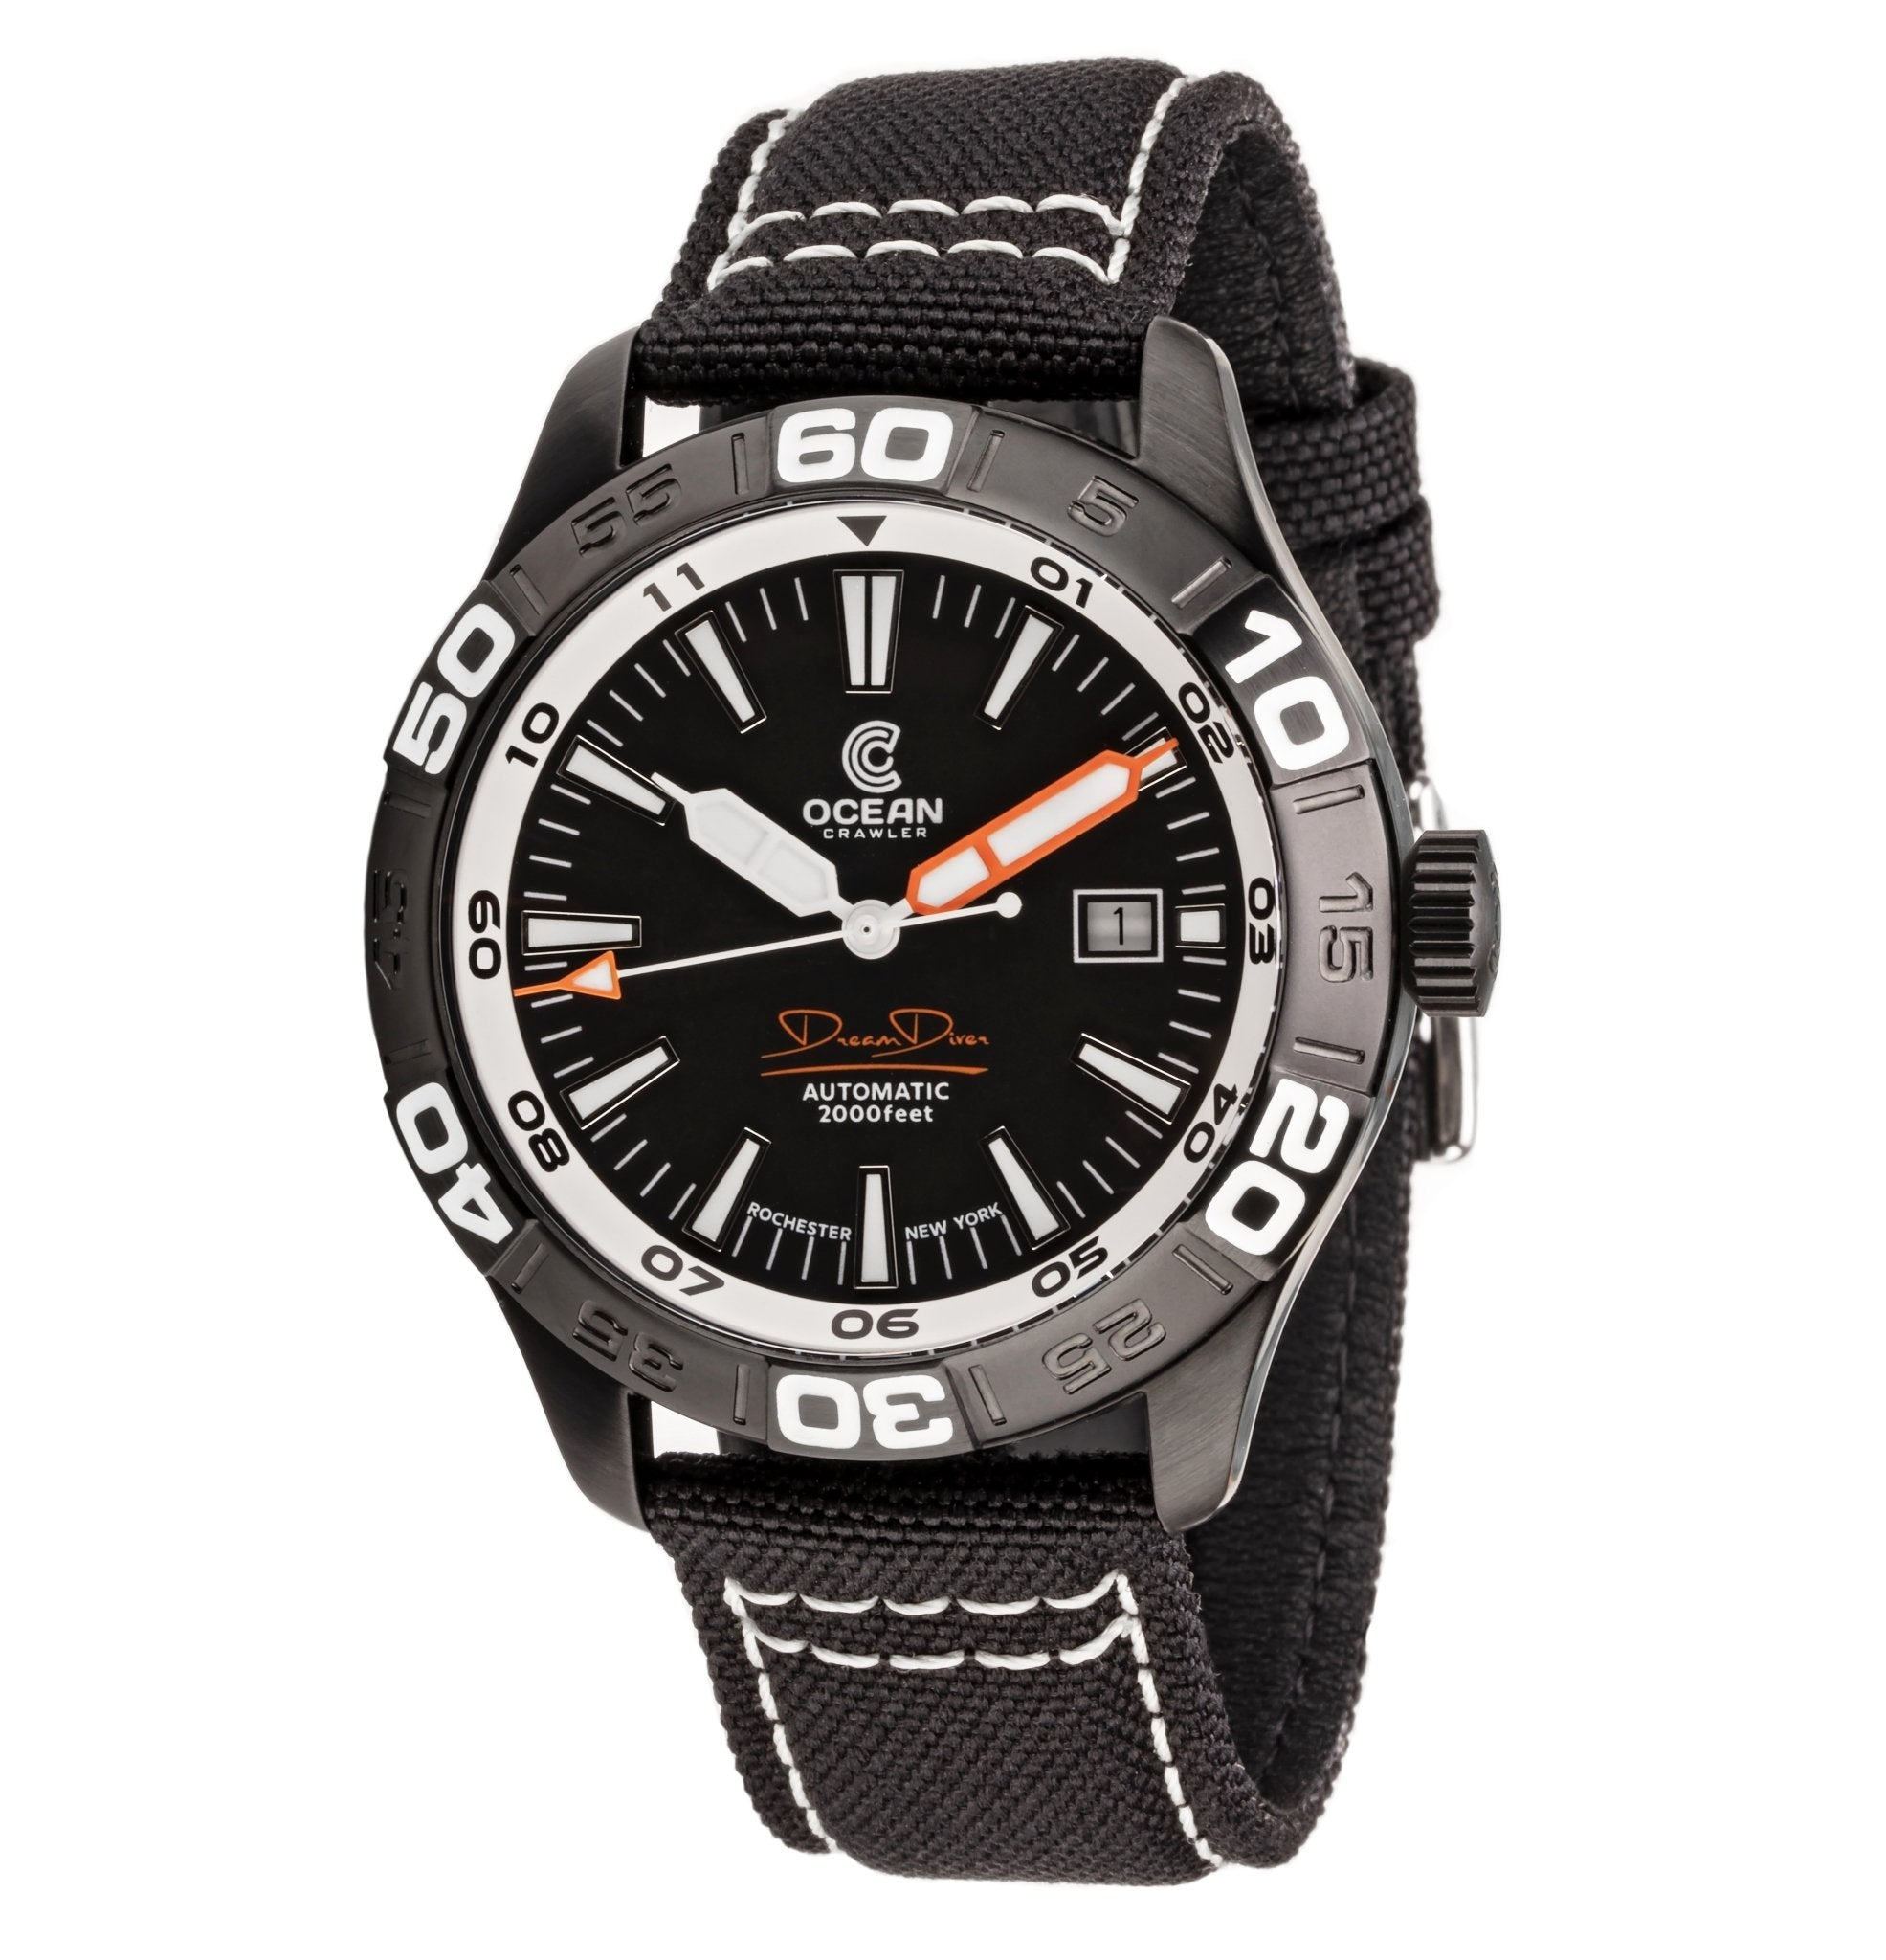 Ocean Crawler Dream Diver - Black DLC - Ocean Crawler Watch Co.